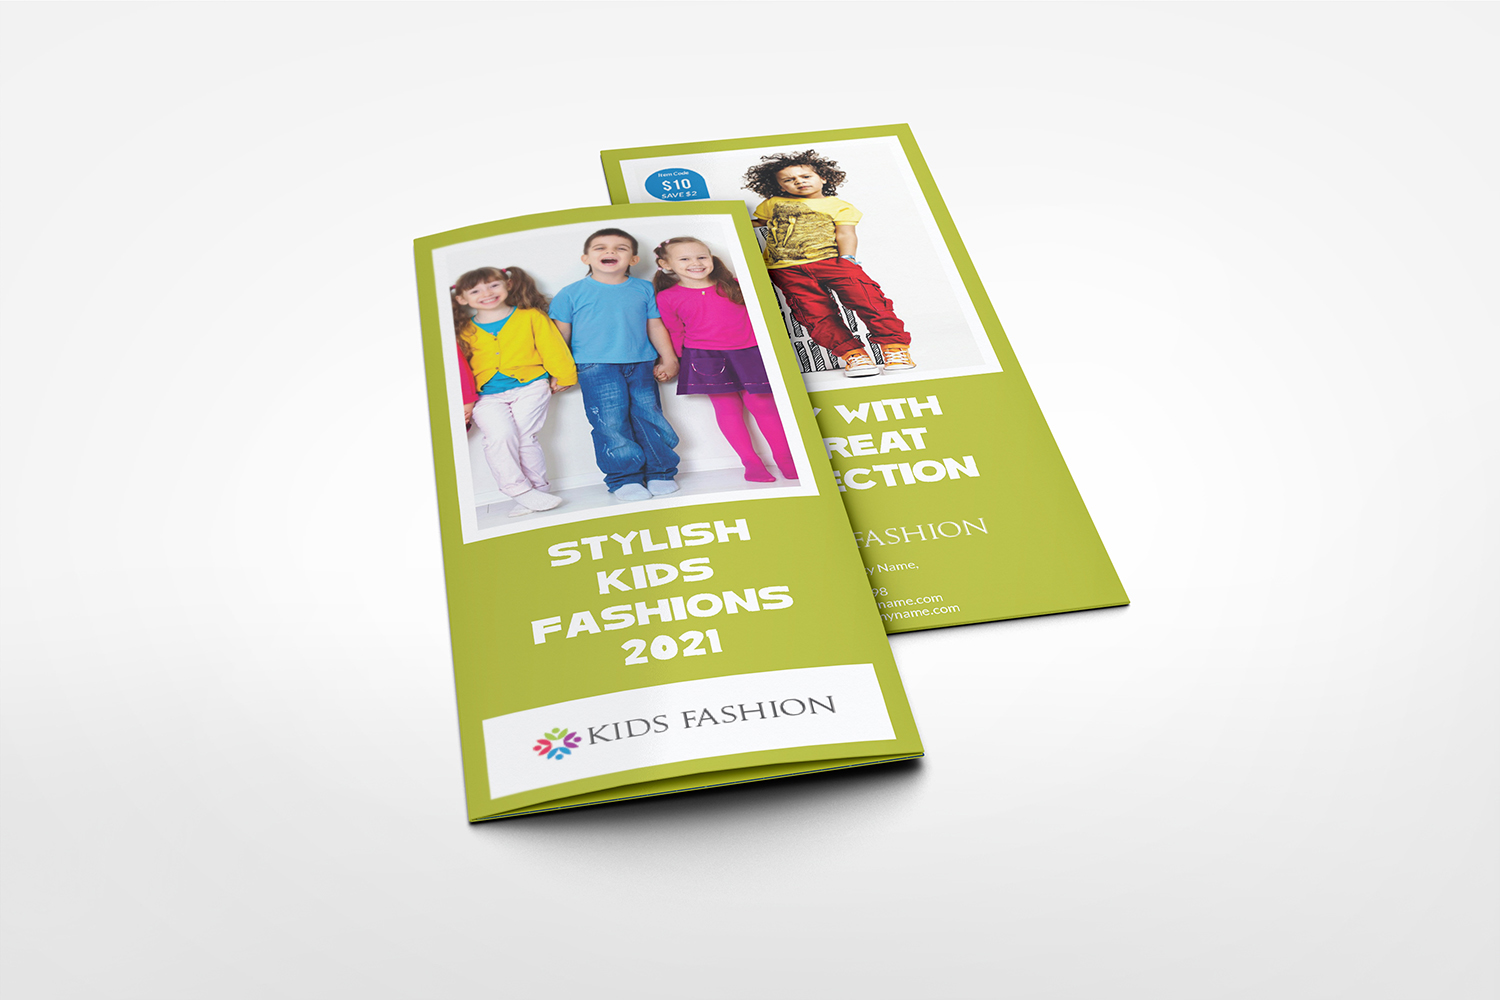 Kids Fashion Products Catalog Tri-Fold Brochure Tempalte example image 5